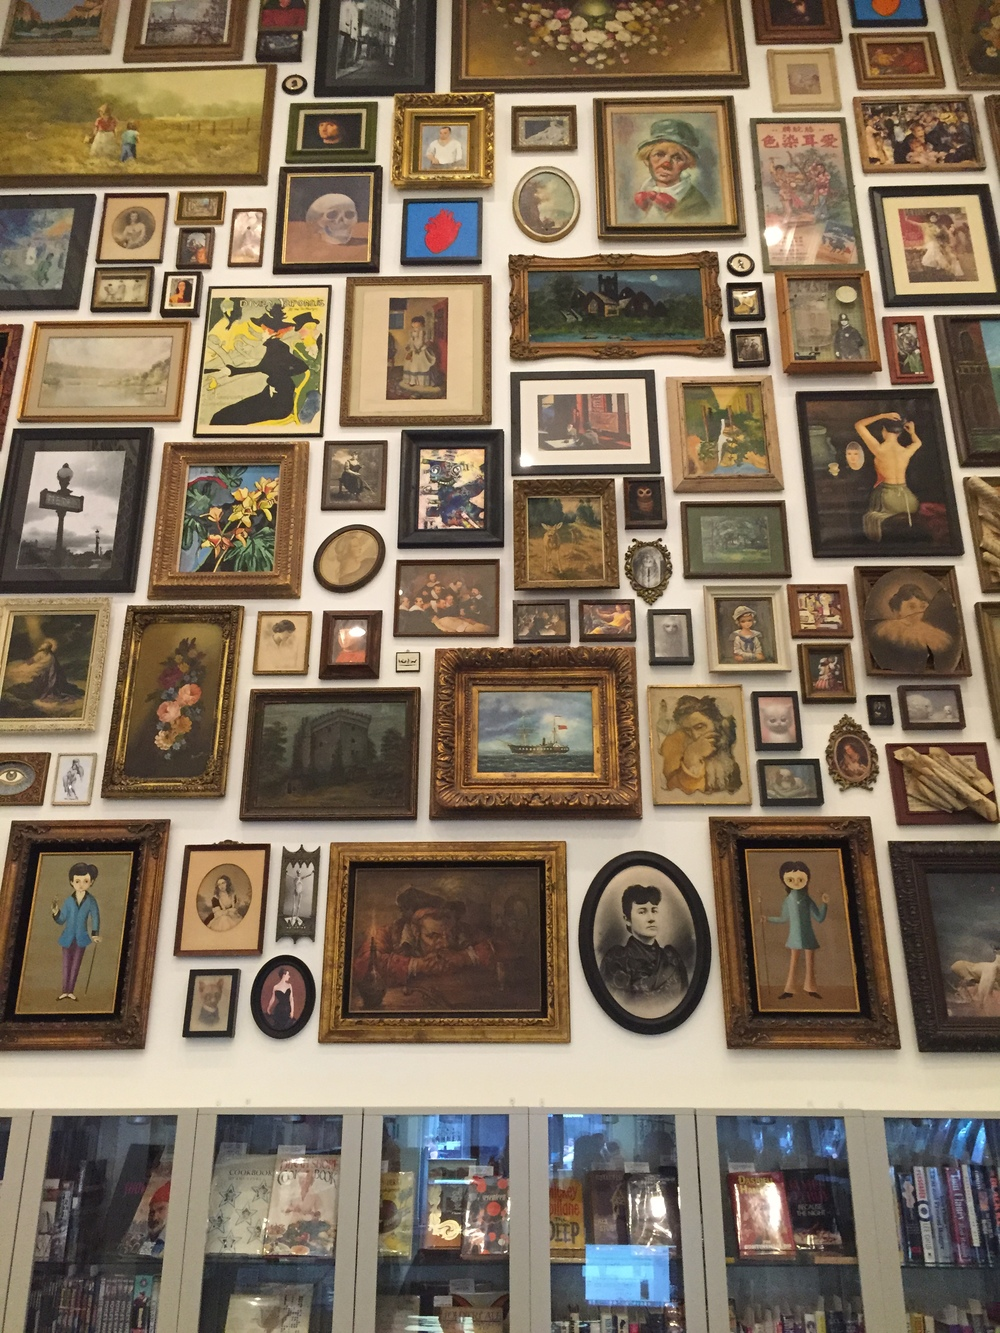 Vintage / thrift store art hung salon style on the back wall of The Last Bookstore Arts & Rare Books Annex.